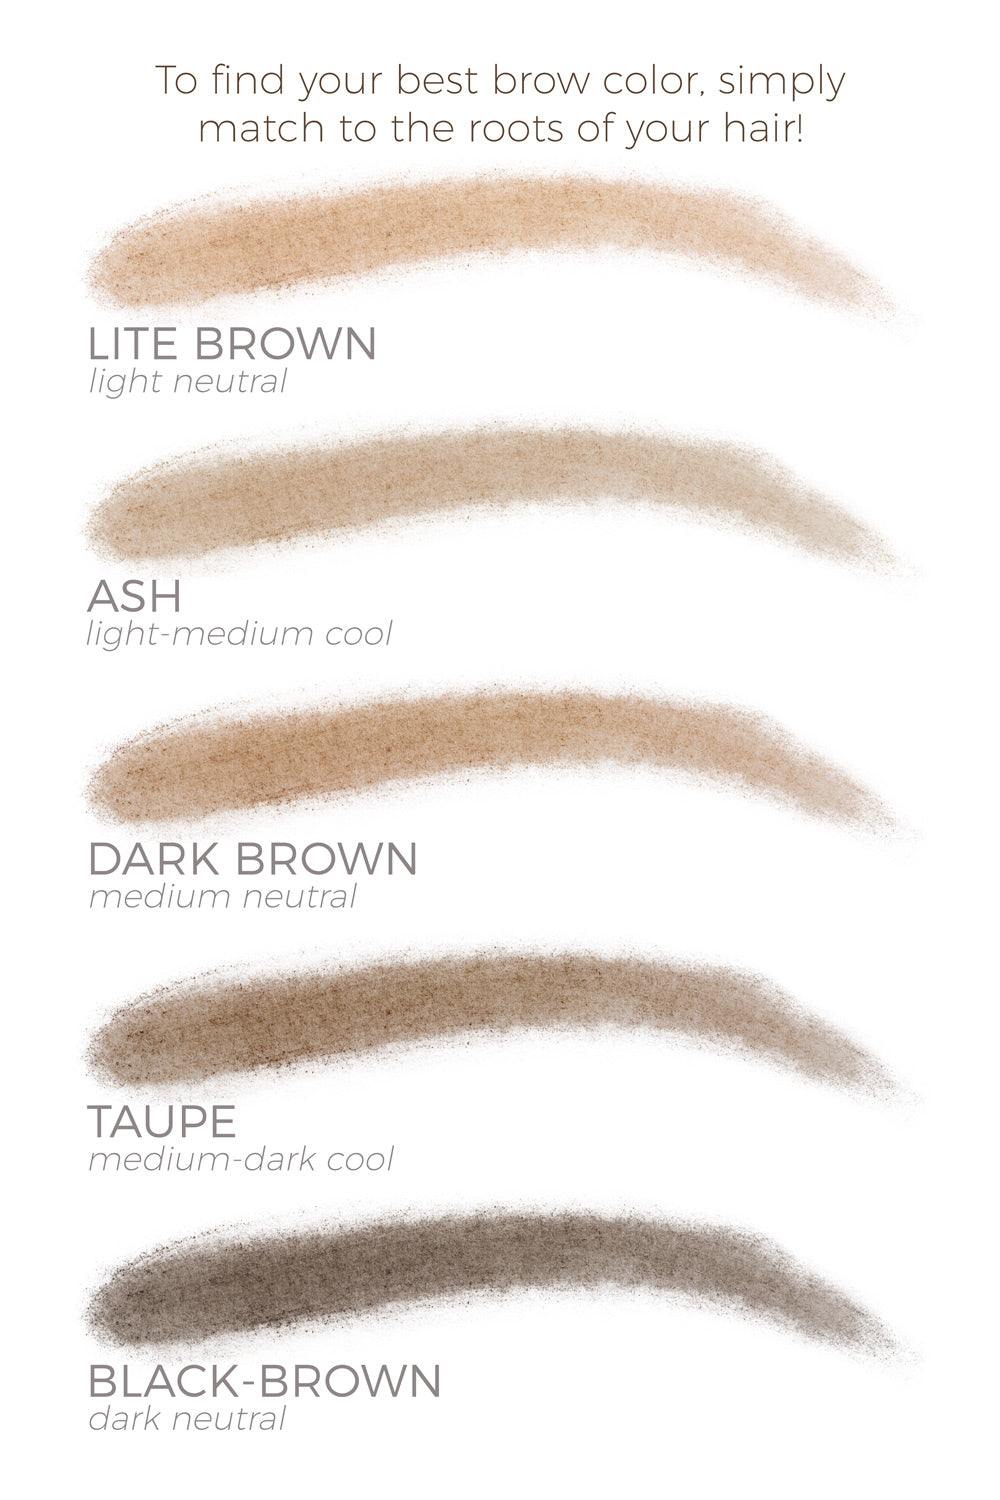 Ash - Brush on Brow